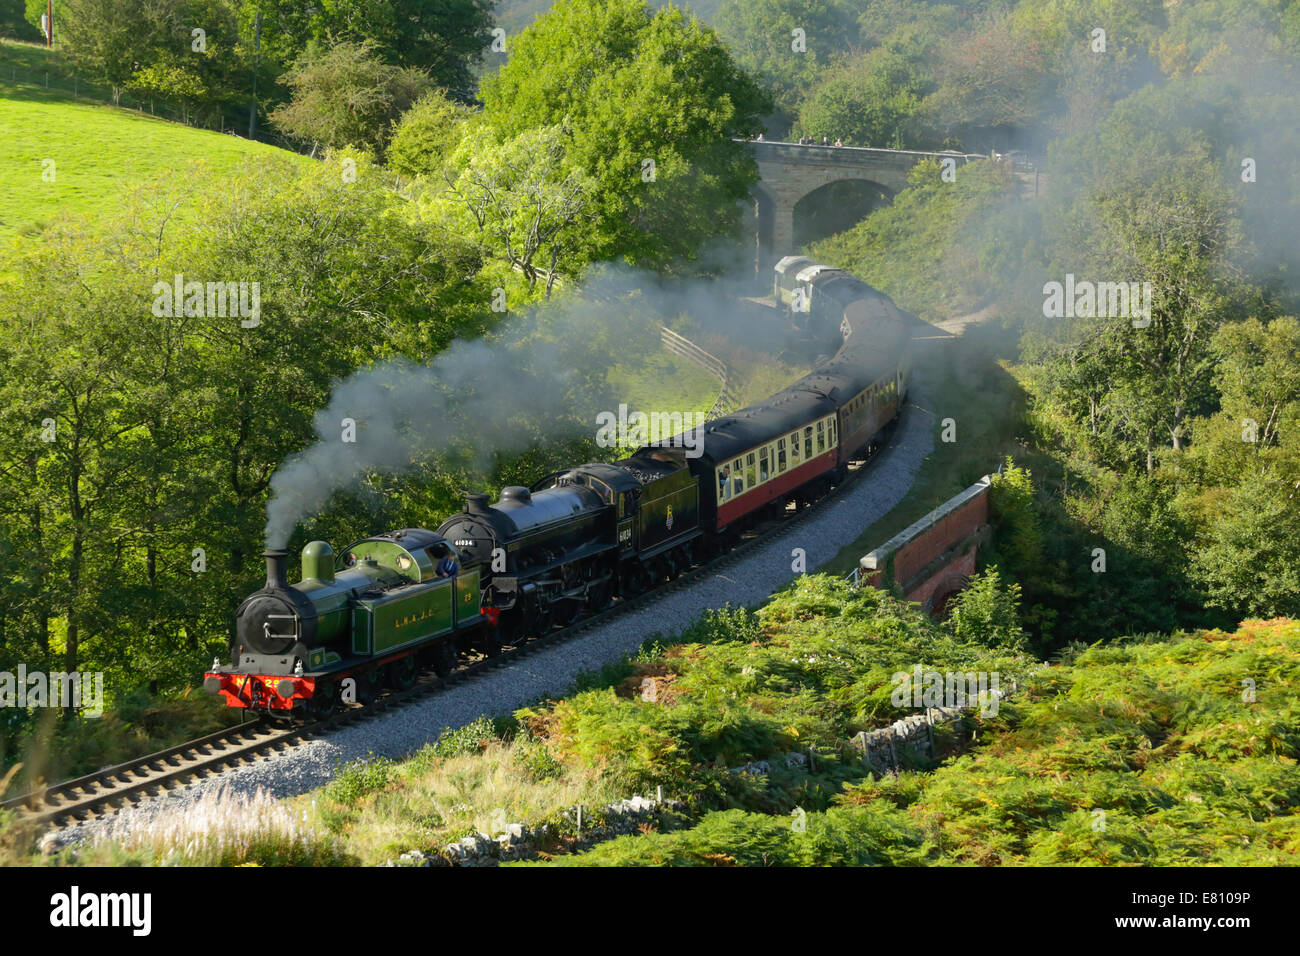 Two steam locomotives at Darnholme near Goathland on the North Yorkshire Moors steam heritage rail line. - Stock Image